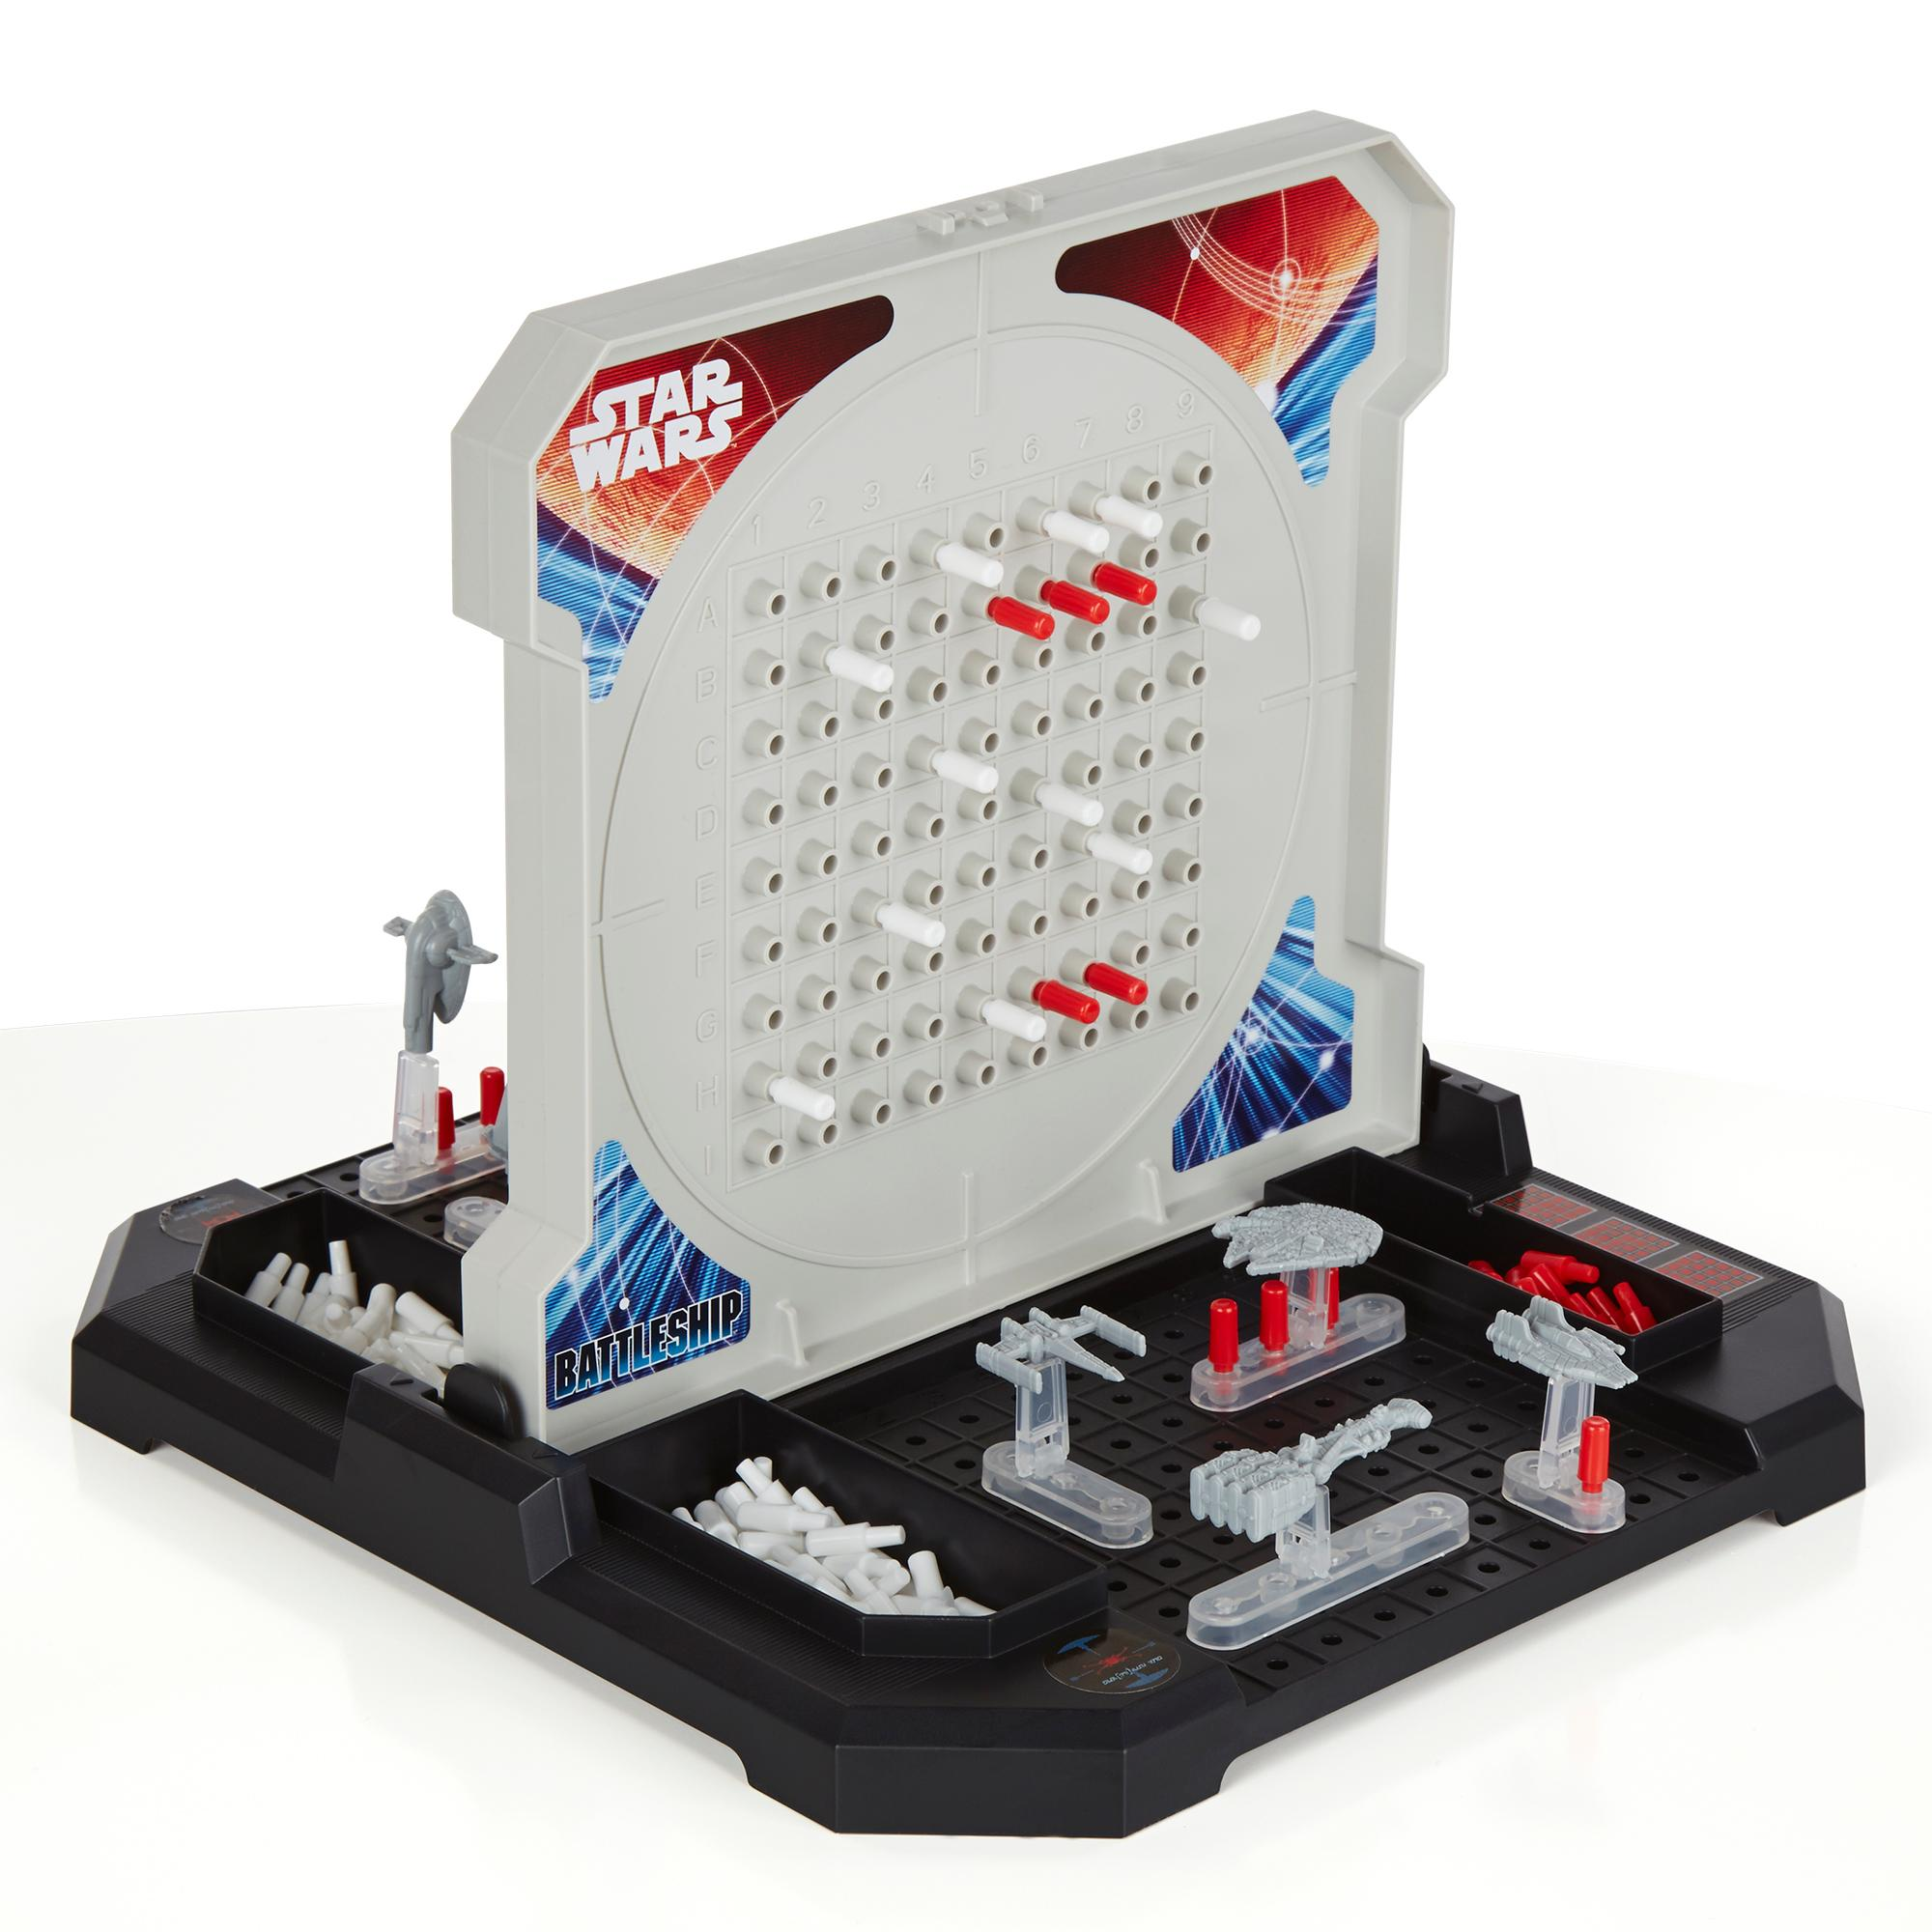 Amazon.com: Hasbro Gaming Battleship Game: Star Wars ...